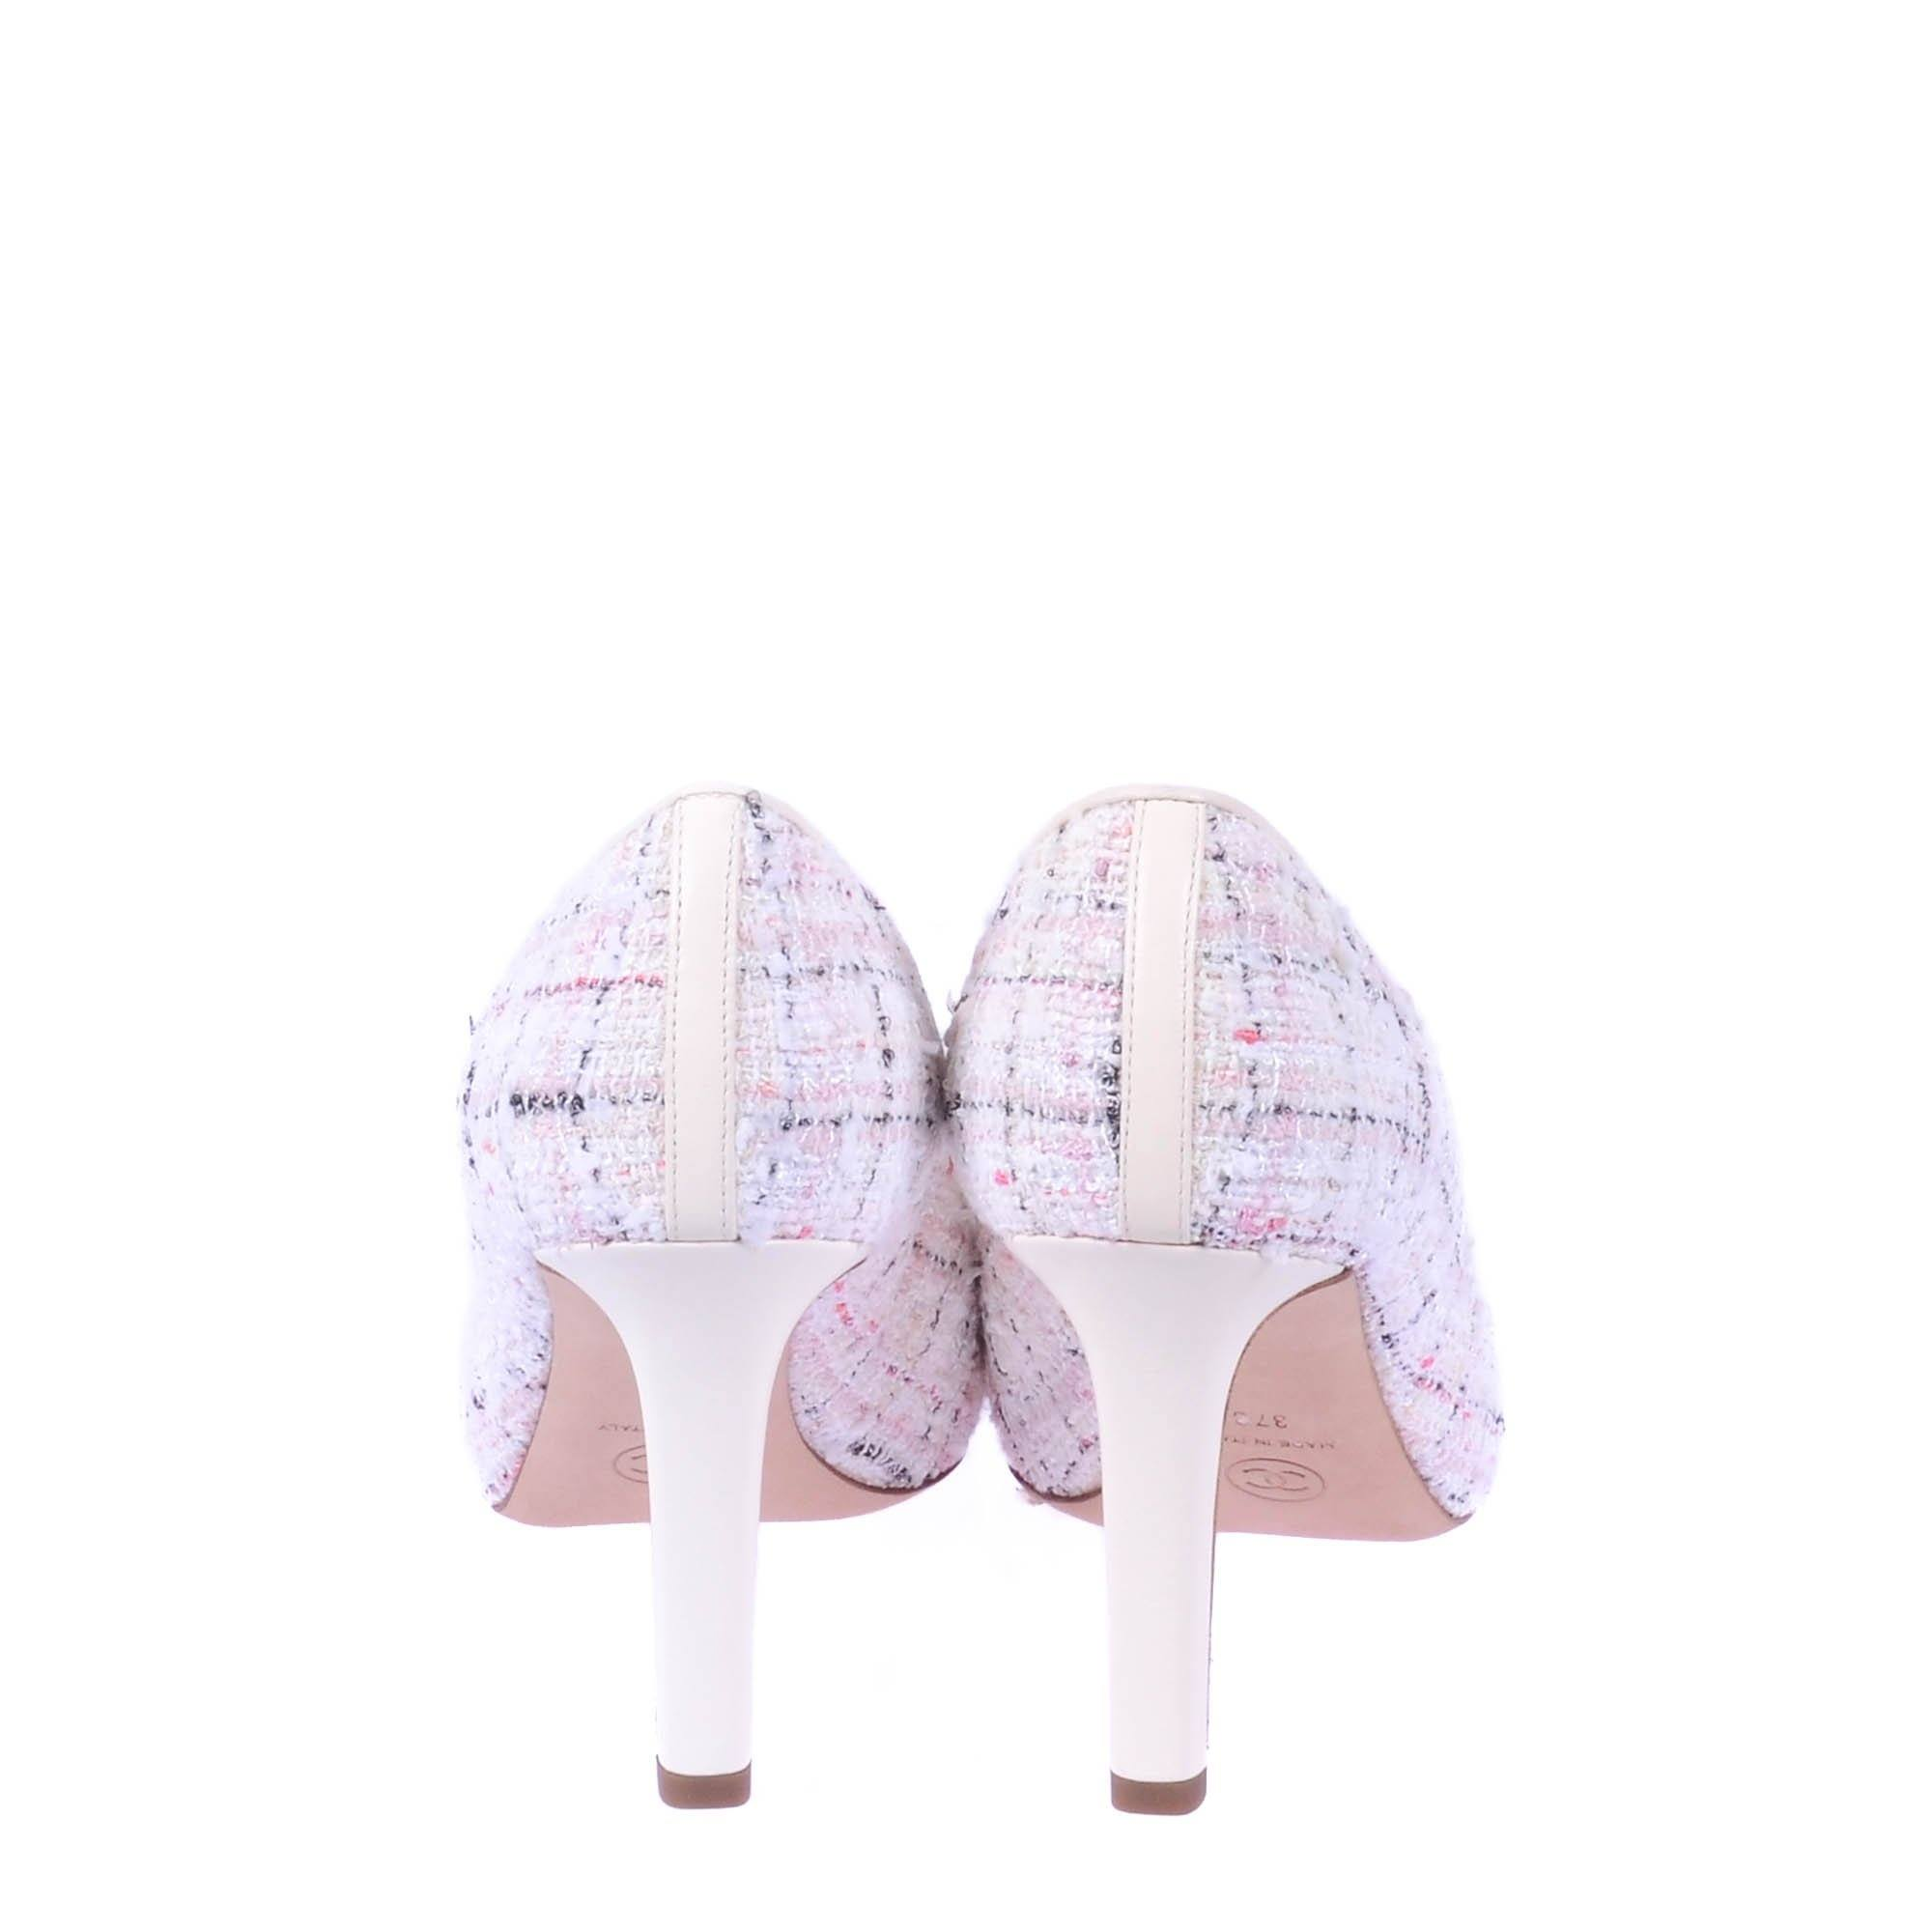 Chanel Light Pink/White Tweed Pumps With Black Cap Toe